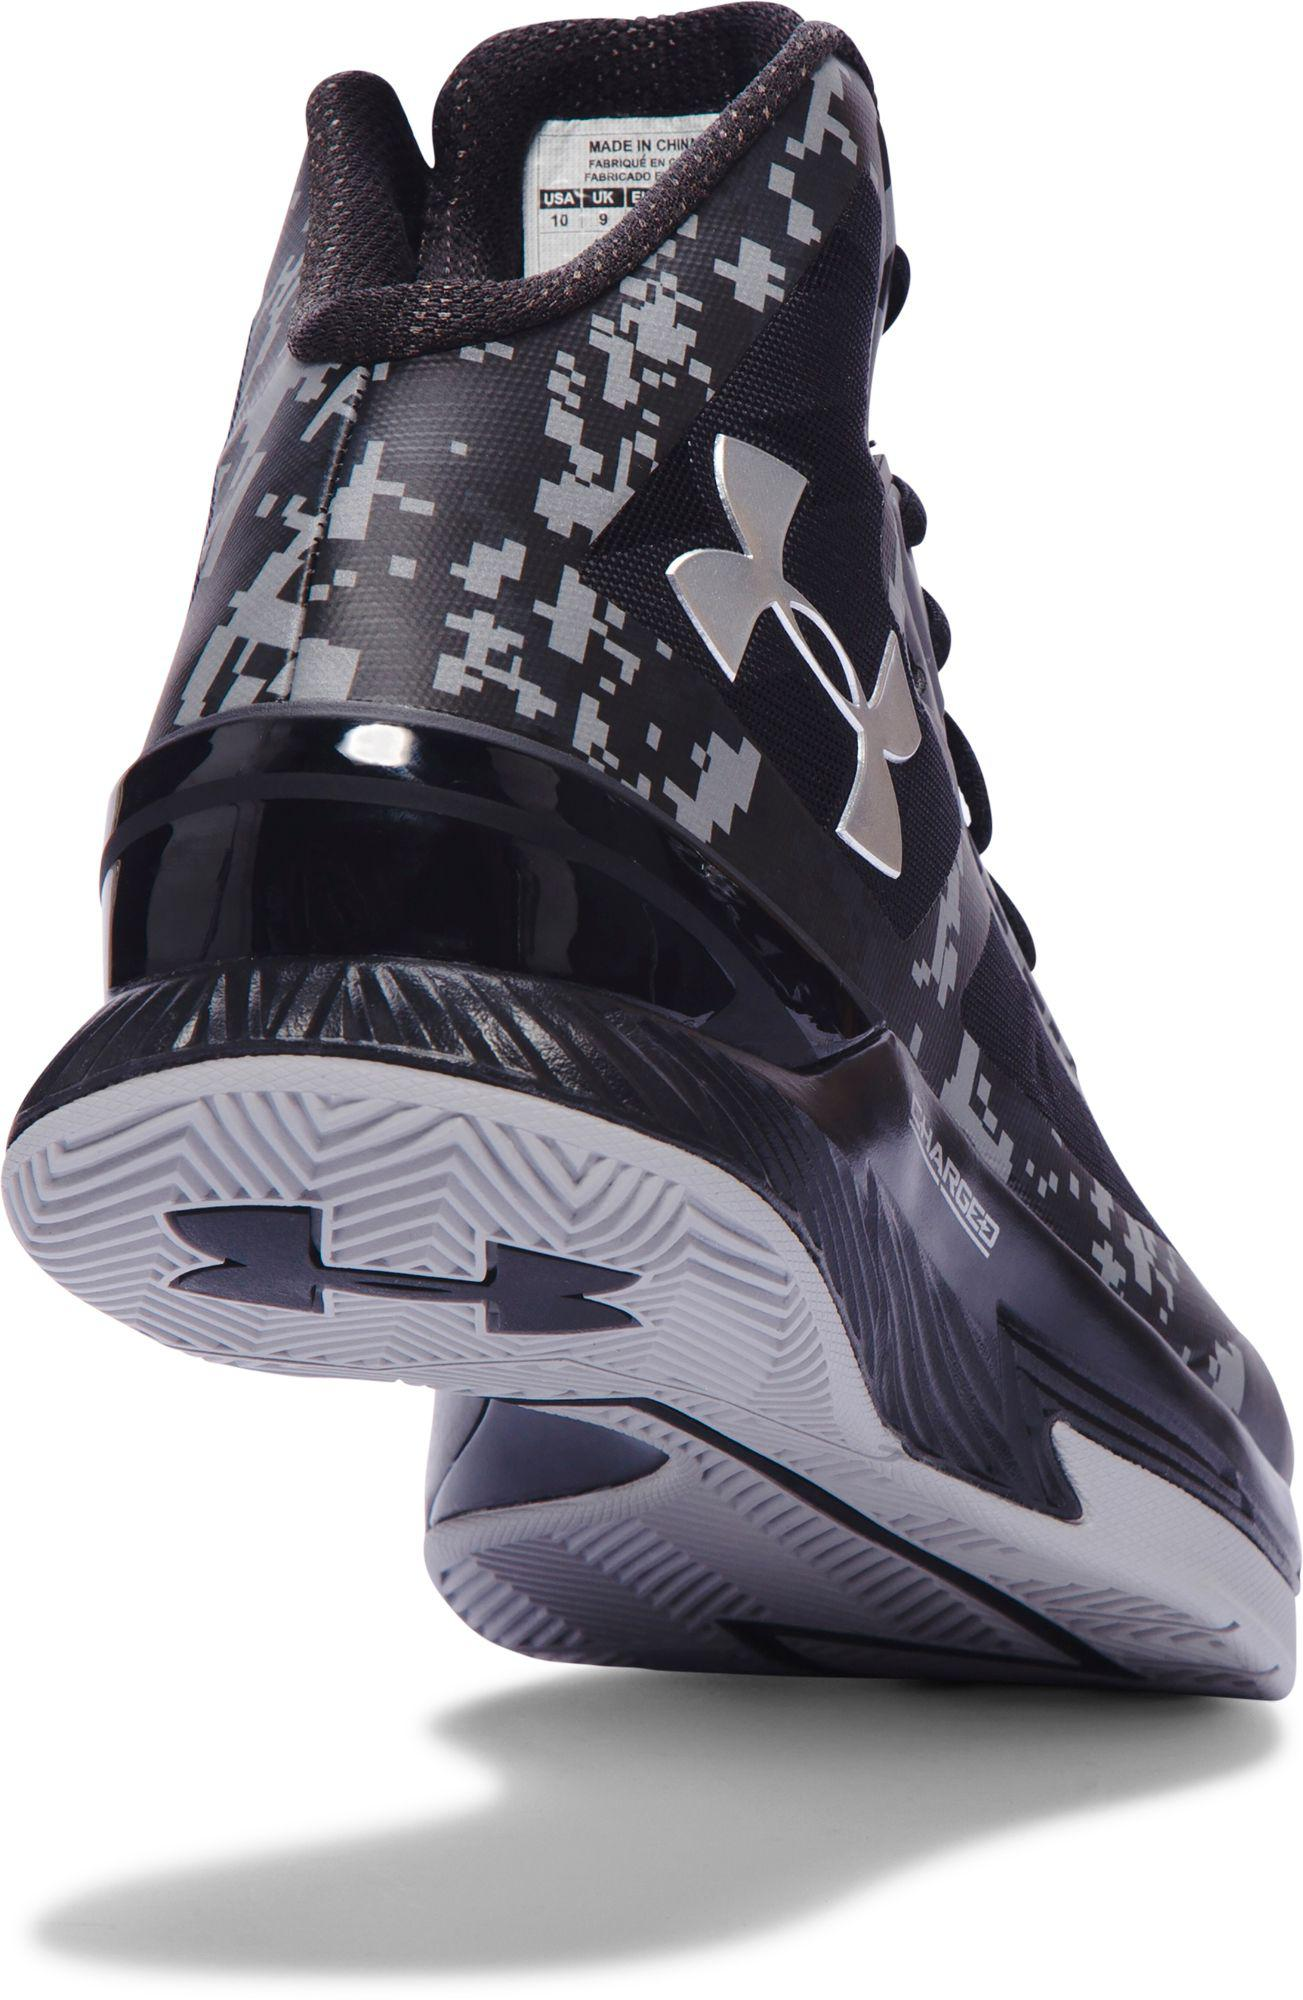 4f4aff62849c Under Armour - Black Clutchfit Lightning Basketball Shoes for Men - Lyst